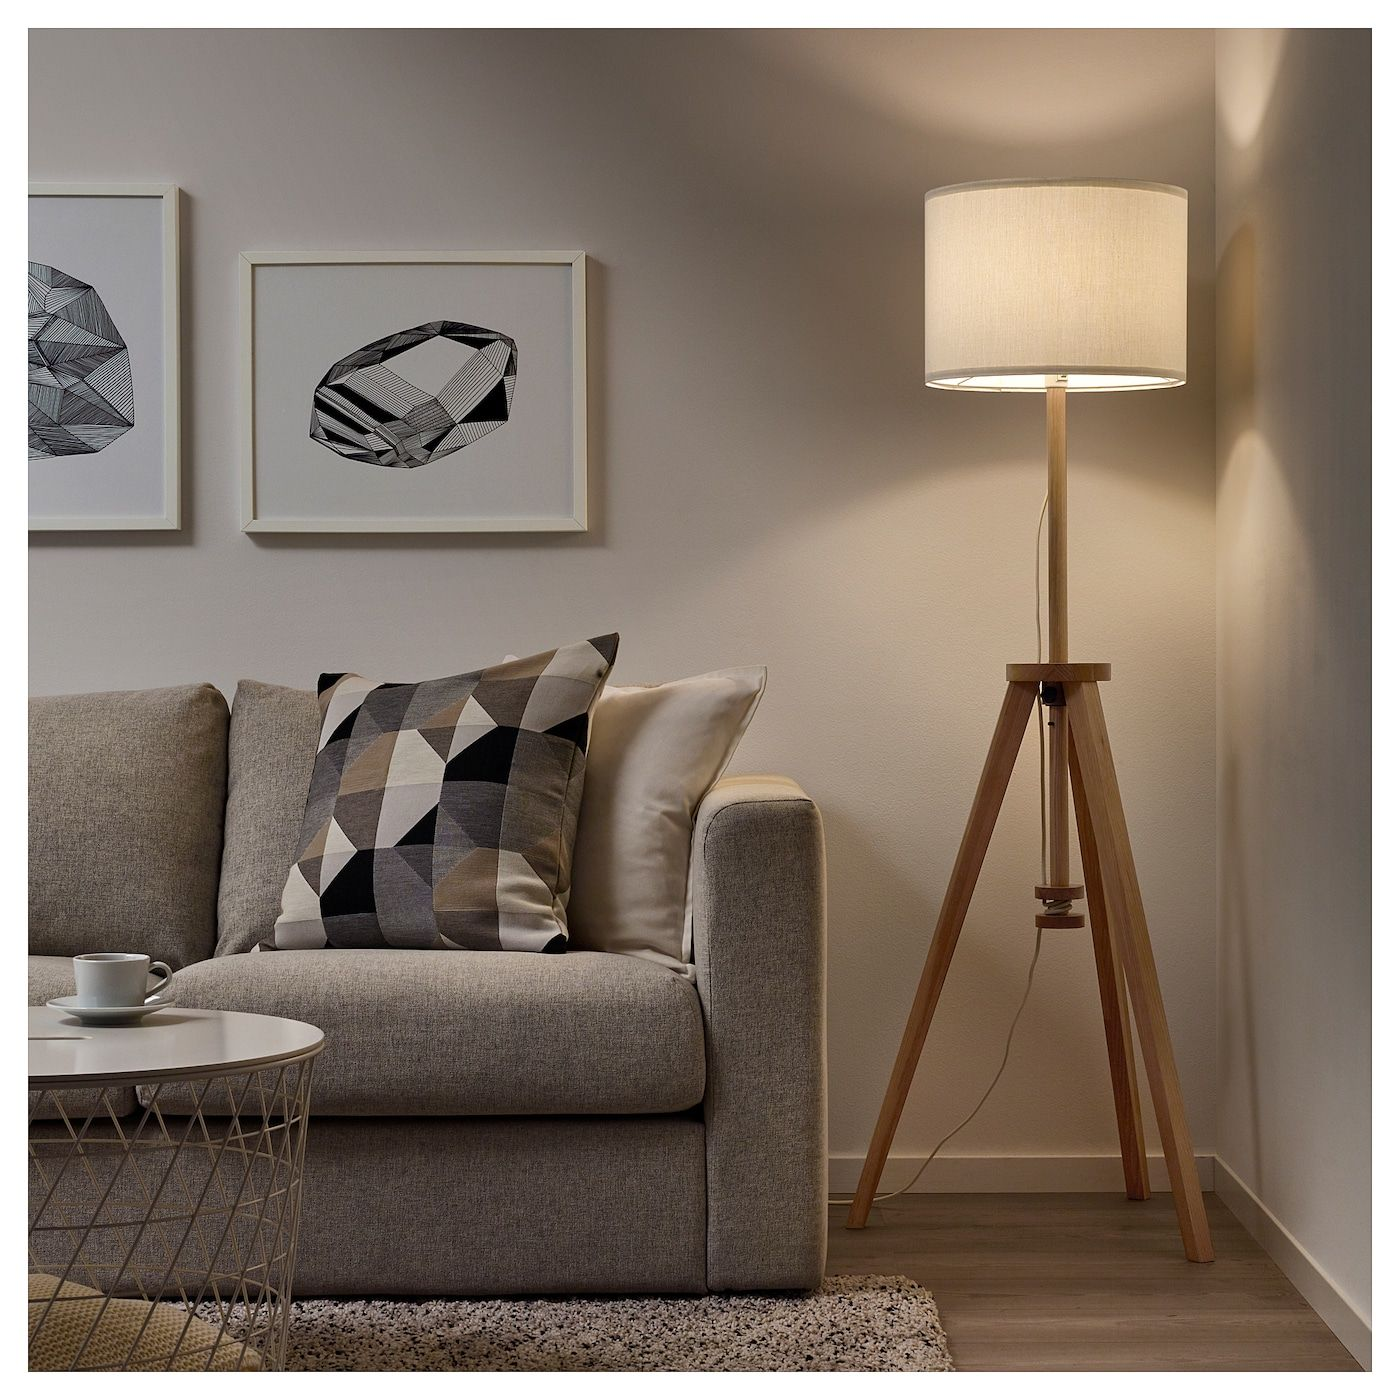 Ikea Lauters Ash White Floor Lamp With Led Bulb In 2020 White